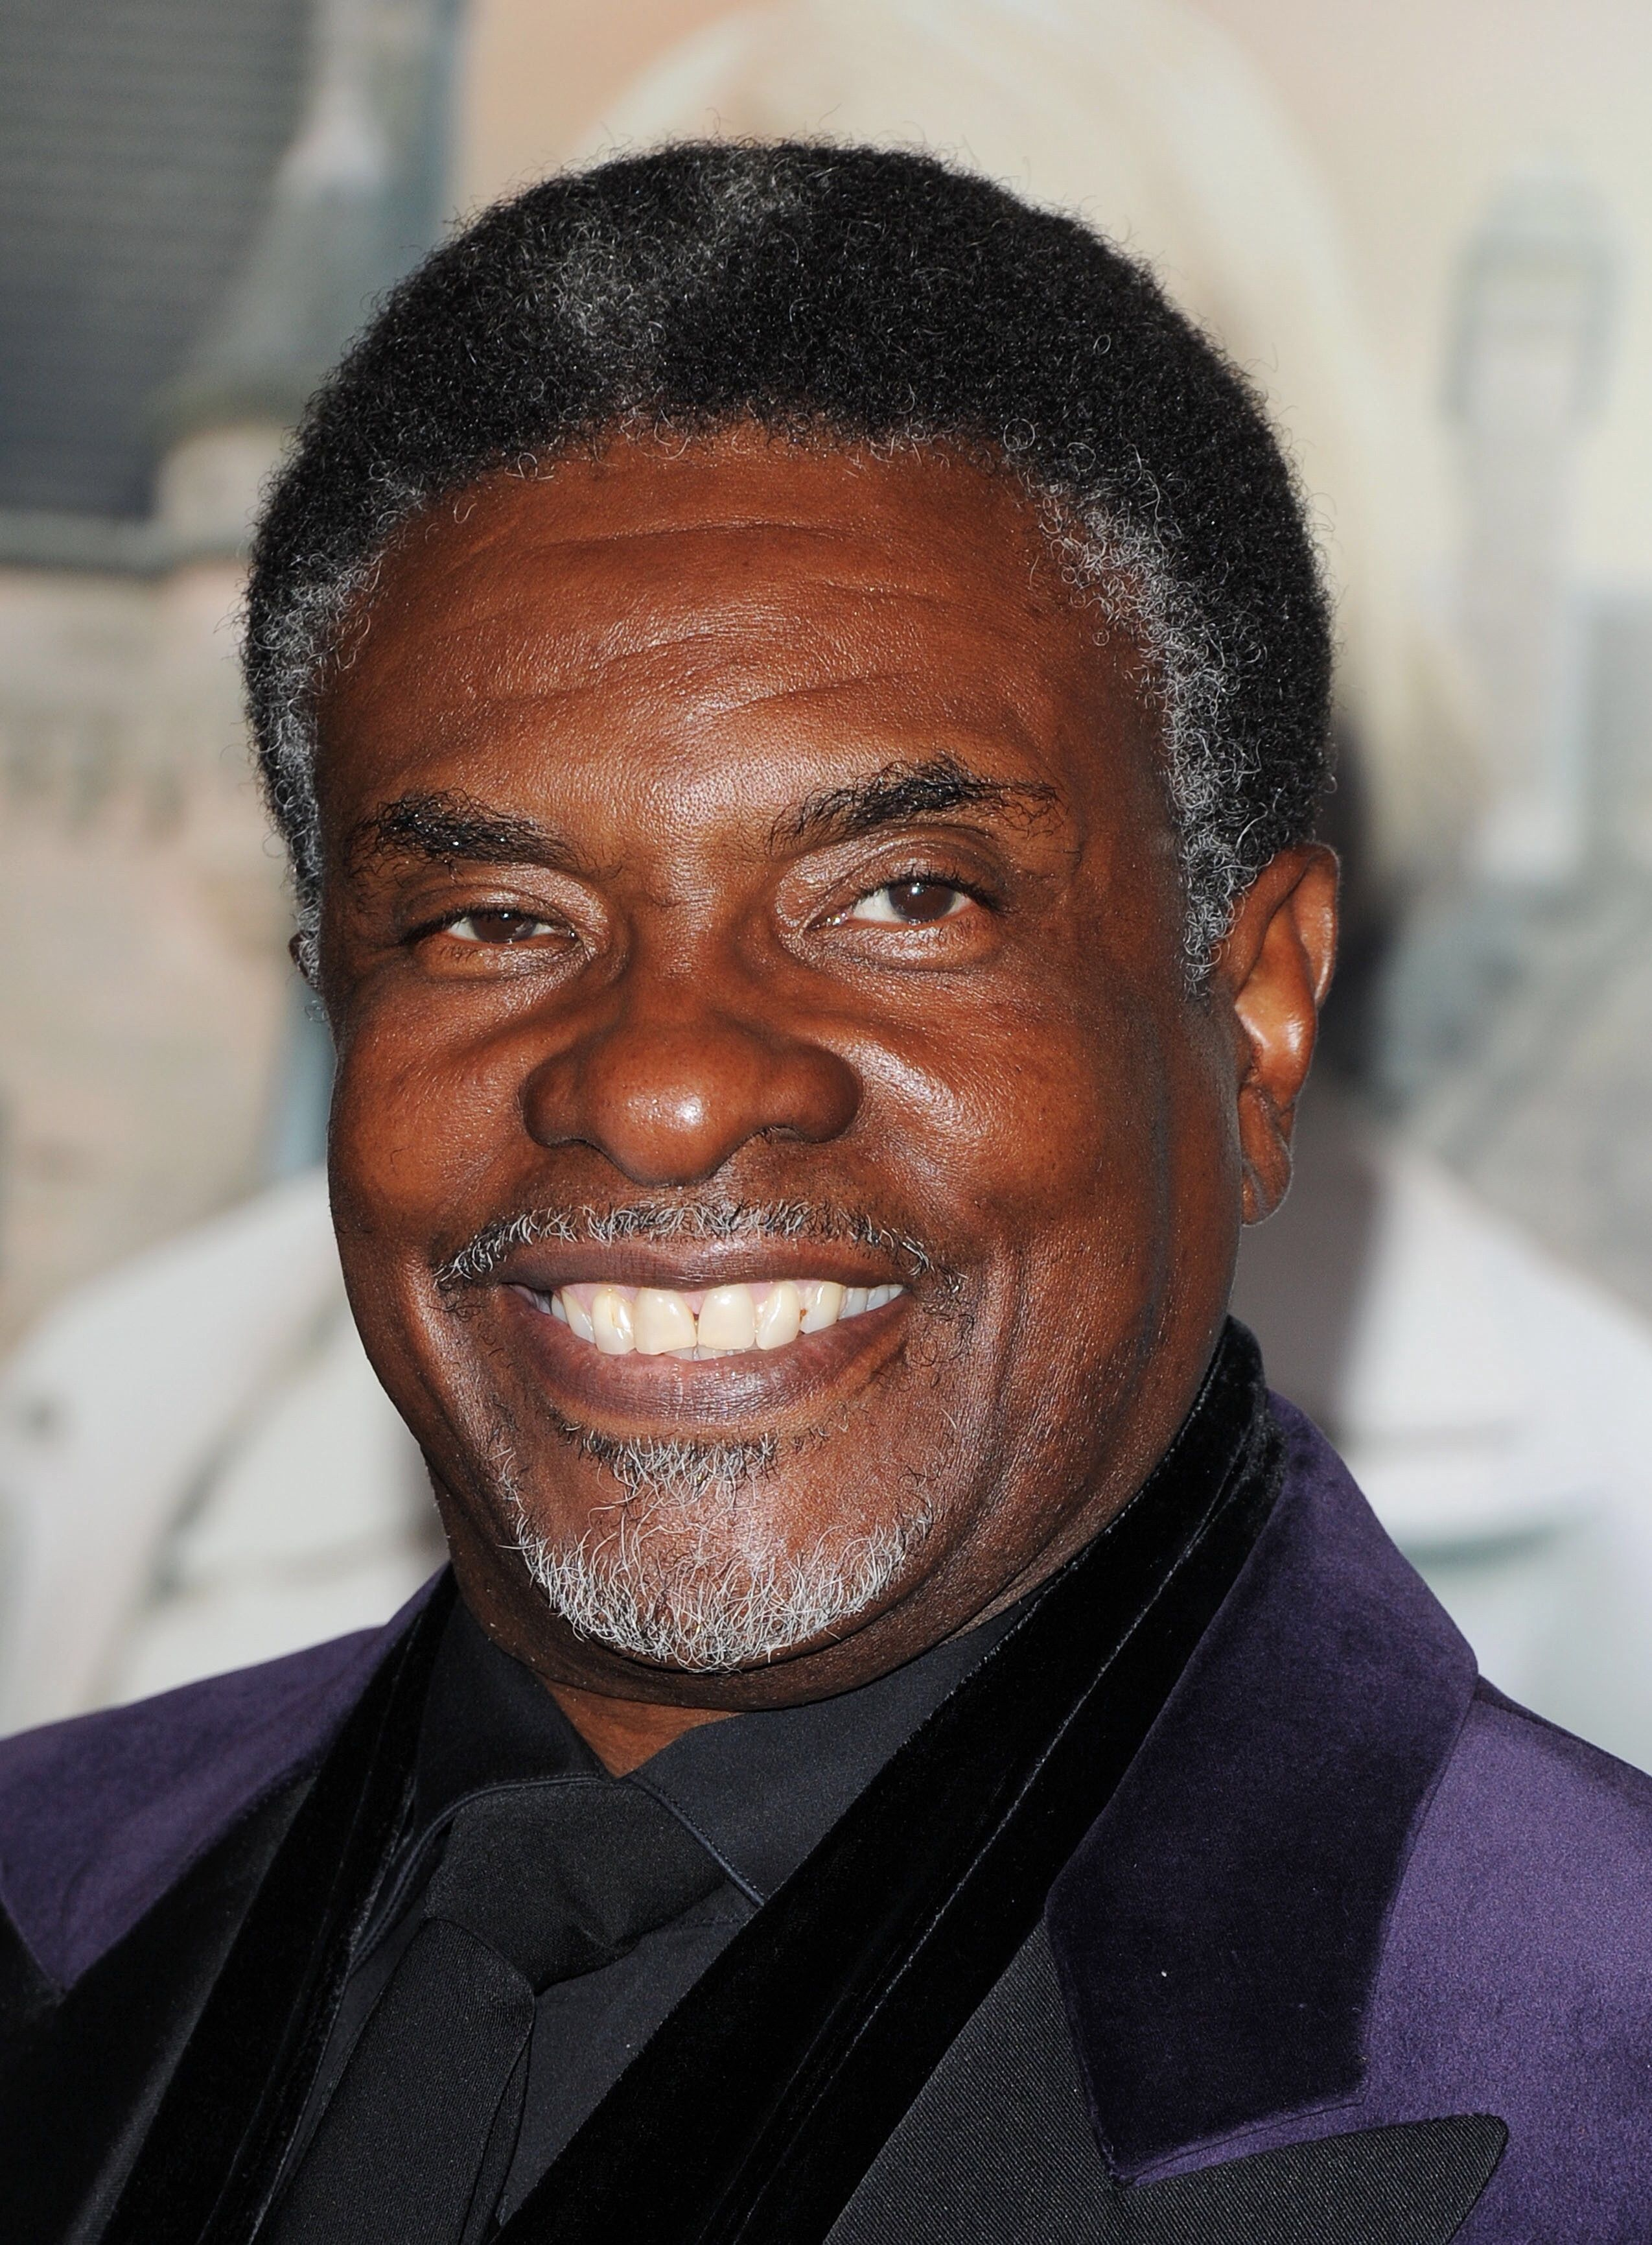 keith david halokeith david voice, keith david mr robot, keith david height, keith david fight scene, keith david saints row 4, keith david friends on the other side, keith david mass effect, keith david tublat, keith david wikipedia, keith david movies, keith david williams, keith david, keith david imdb, keith david net worth, keith david community, keith david arbiter, keith david halo, keith david wiki, keith david actor, keith david rick and morty